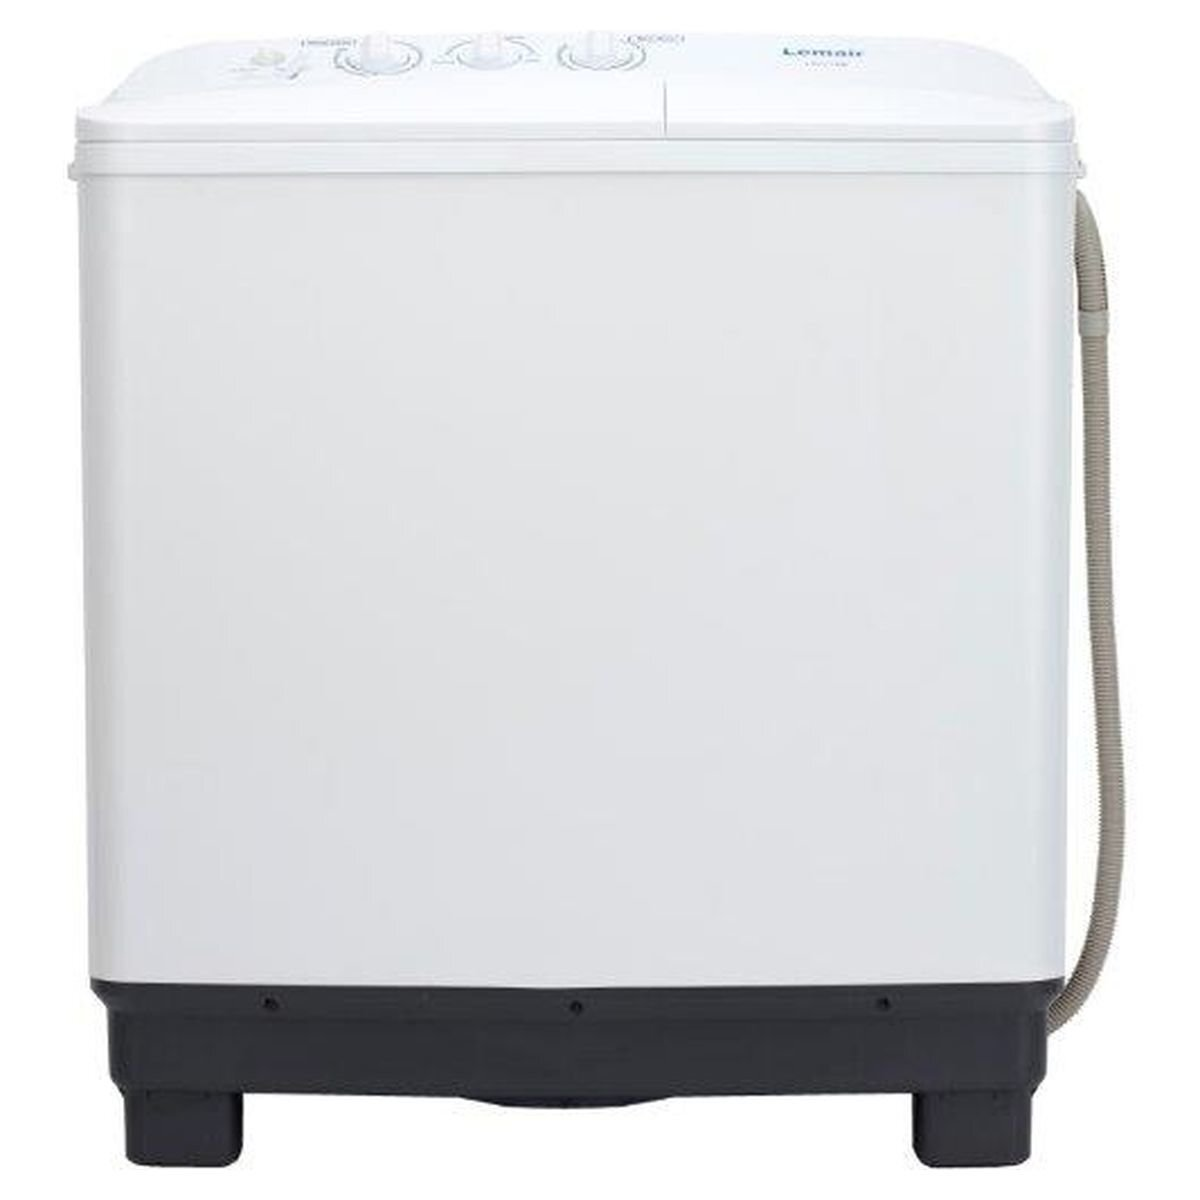 3: The Best for Combining Portability for Mid-sized Families: Lemair 8KG Twin Tub